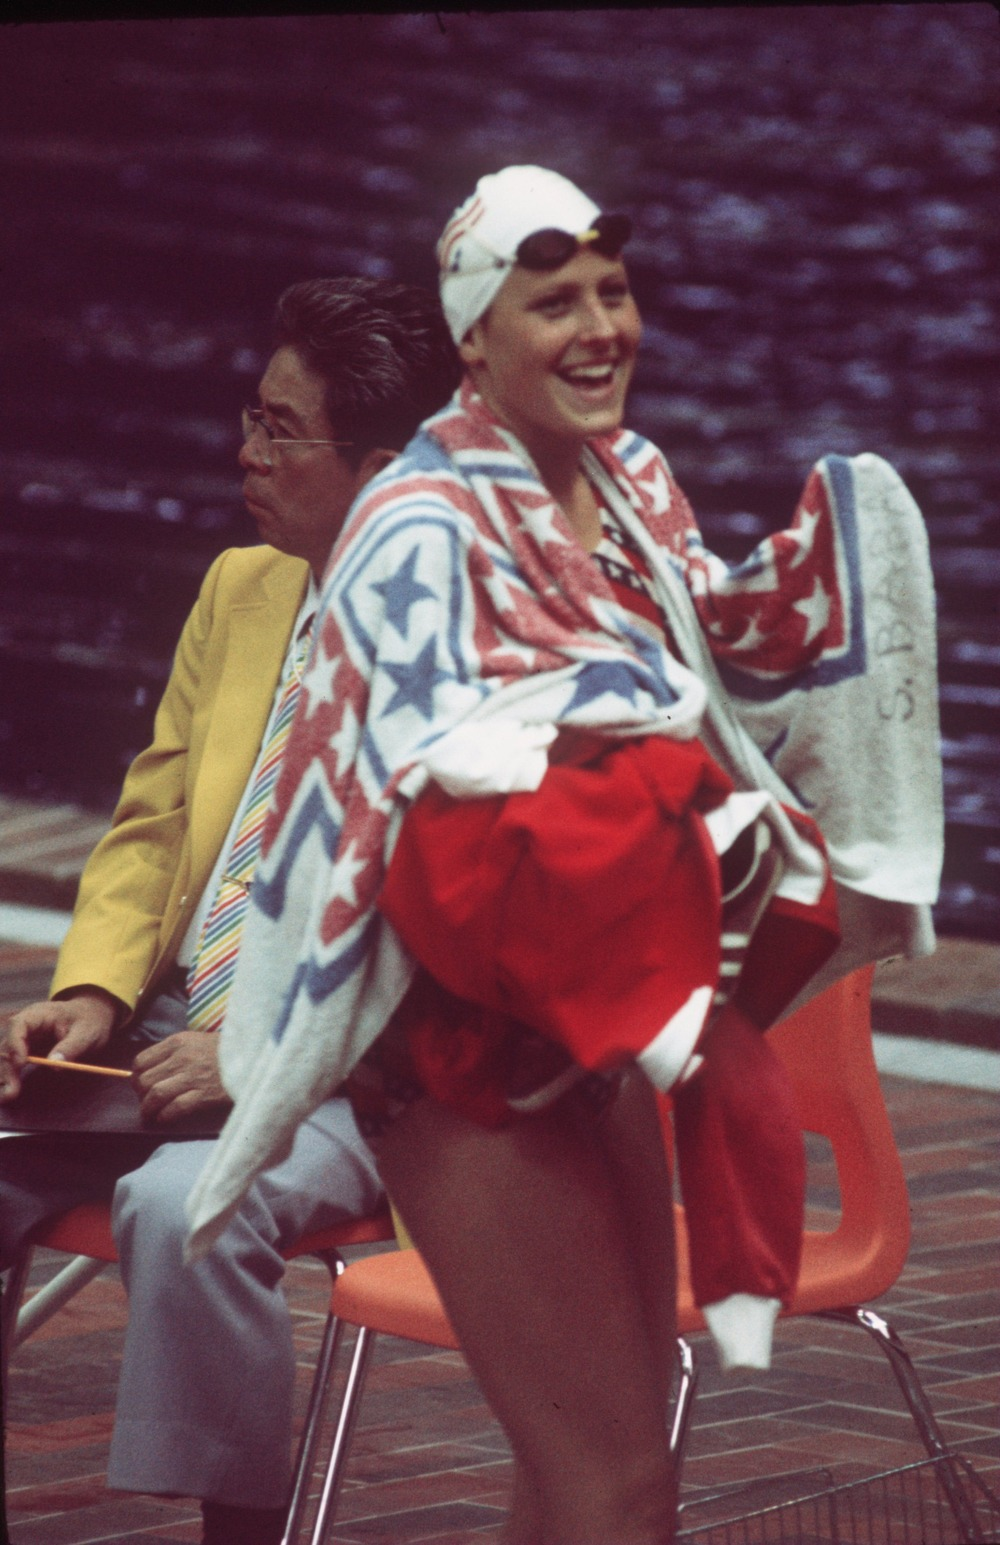 The USA Women's team had high hopes for the 1976 Montreal Olympics, but seemed to come up short again and again, usually against swimmers from East Germany. In the 4 x 100 Free Relay, they said enough is enough and swam above their apparent abilities. In an awesome team performance, Kim Peyton, Jill Sterkel, Shirley Babashoff, and Wendy Boglioli took the gold.